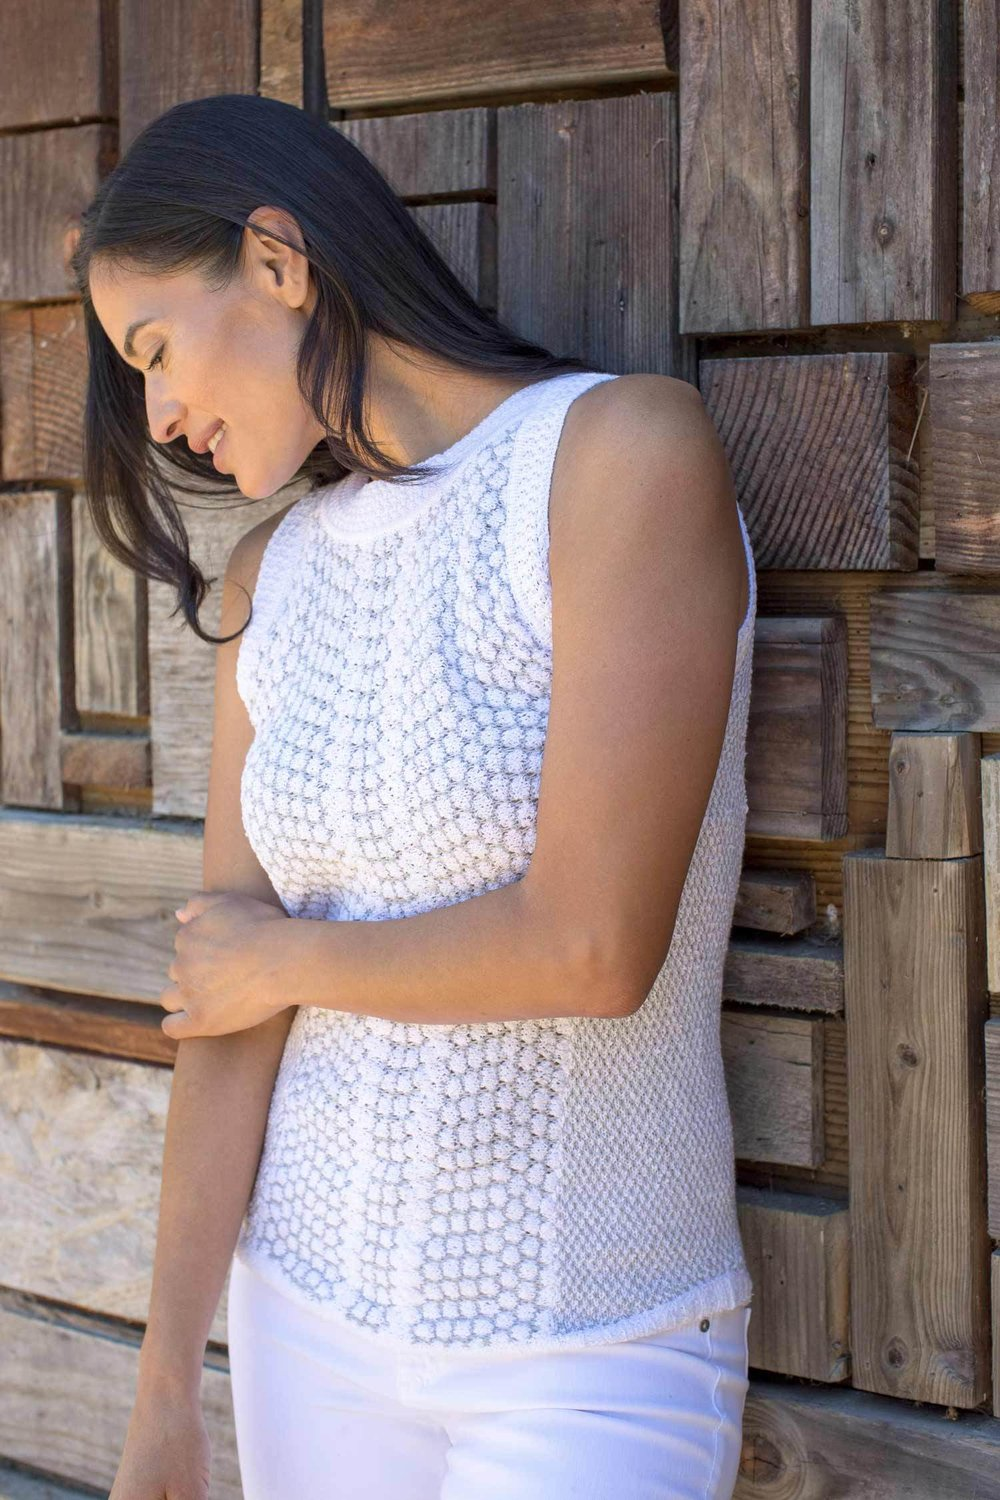 You may also like: - Indigenous Designs Crochet & Knit Top